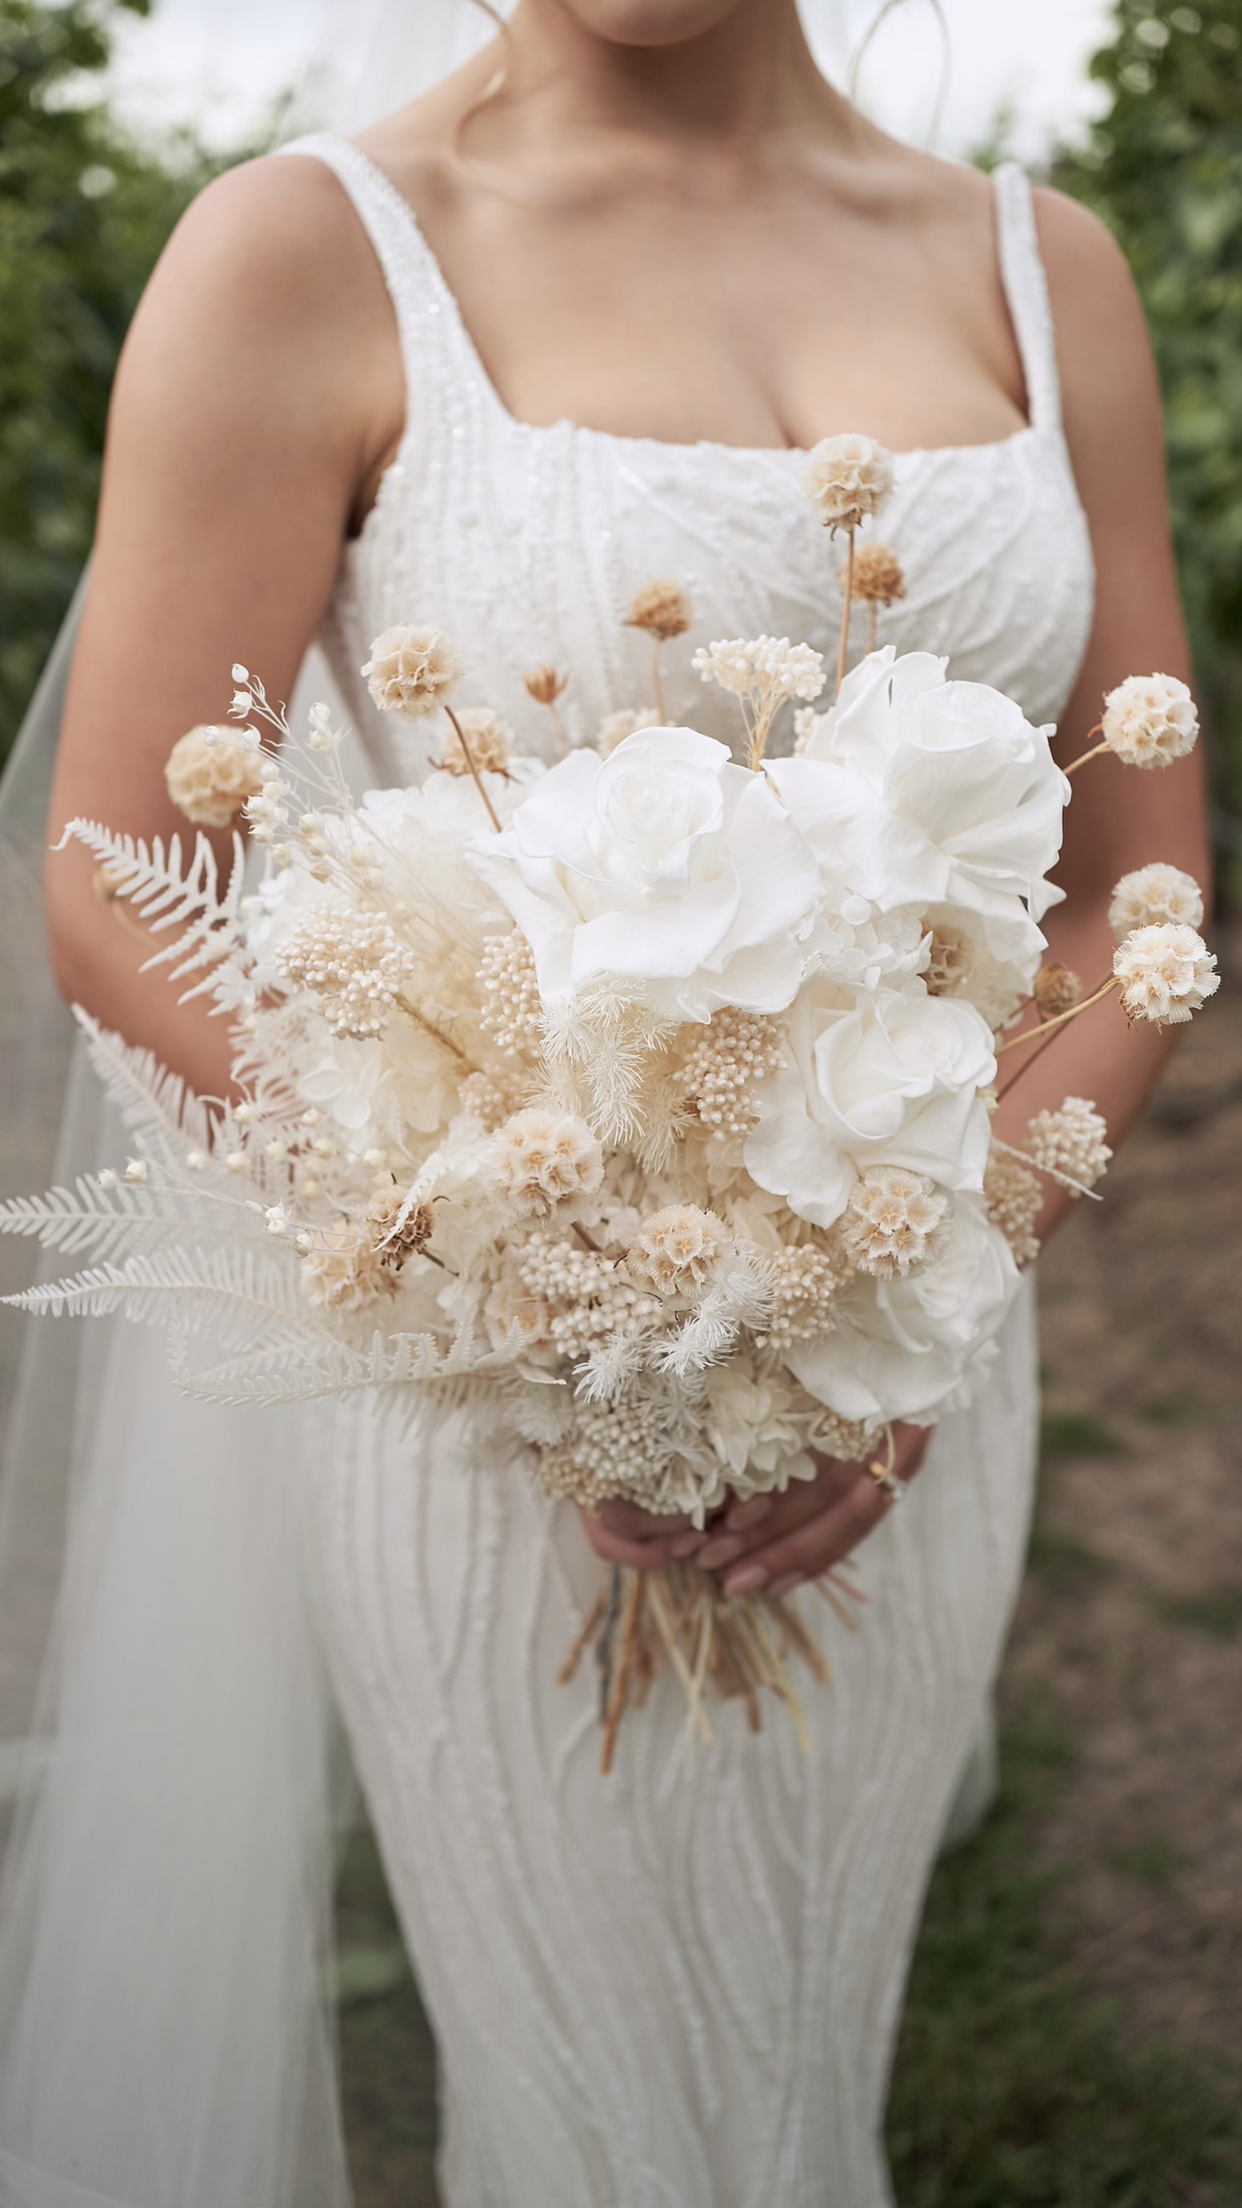 Dried / preserved brides bouquet